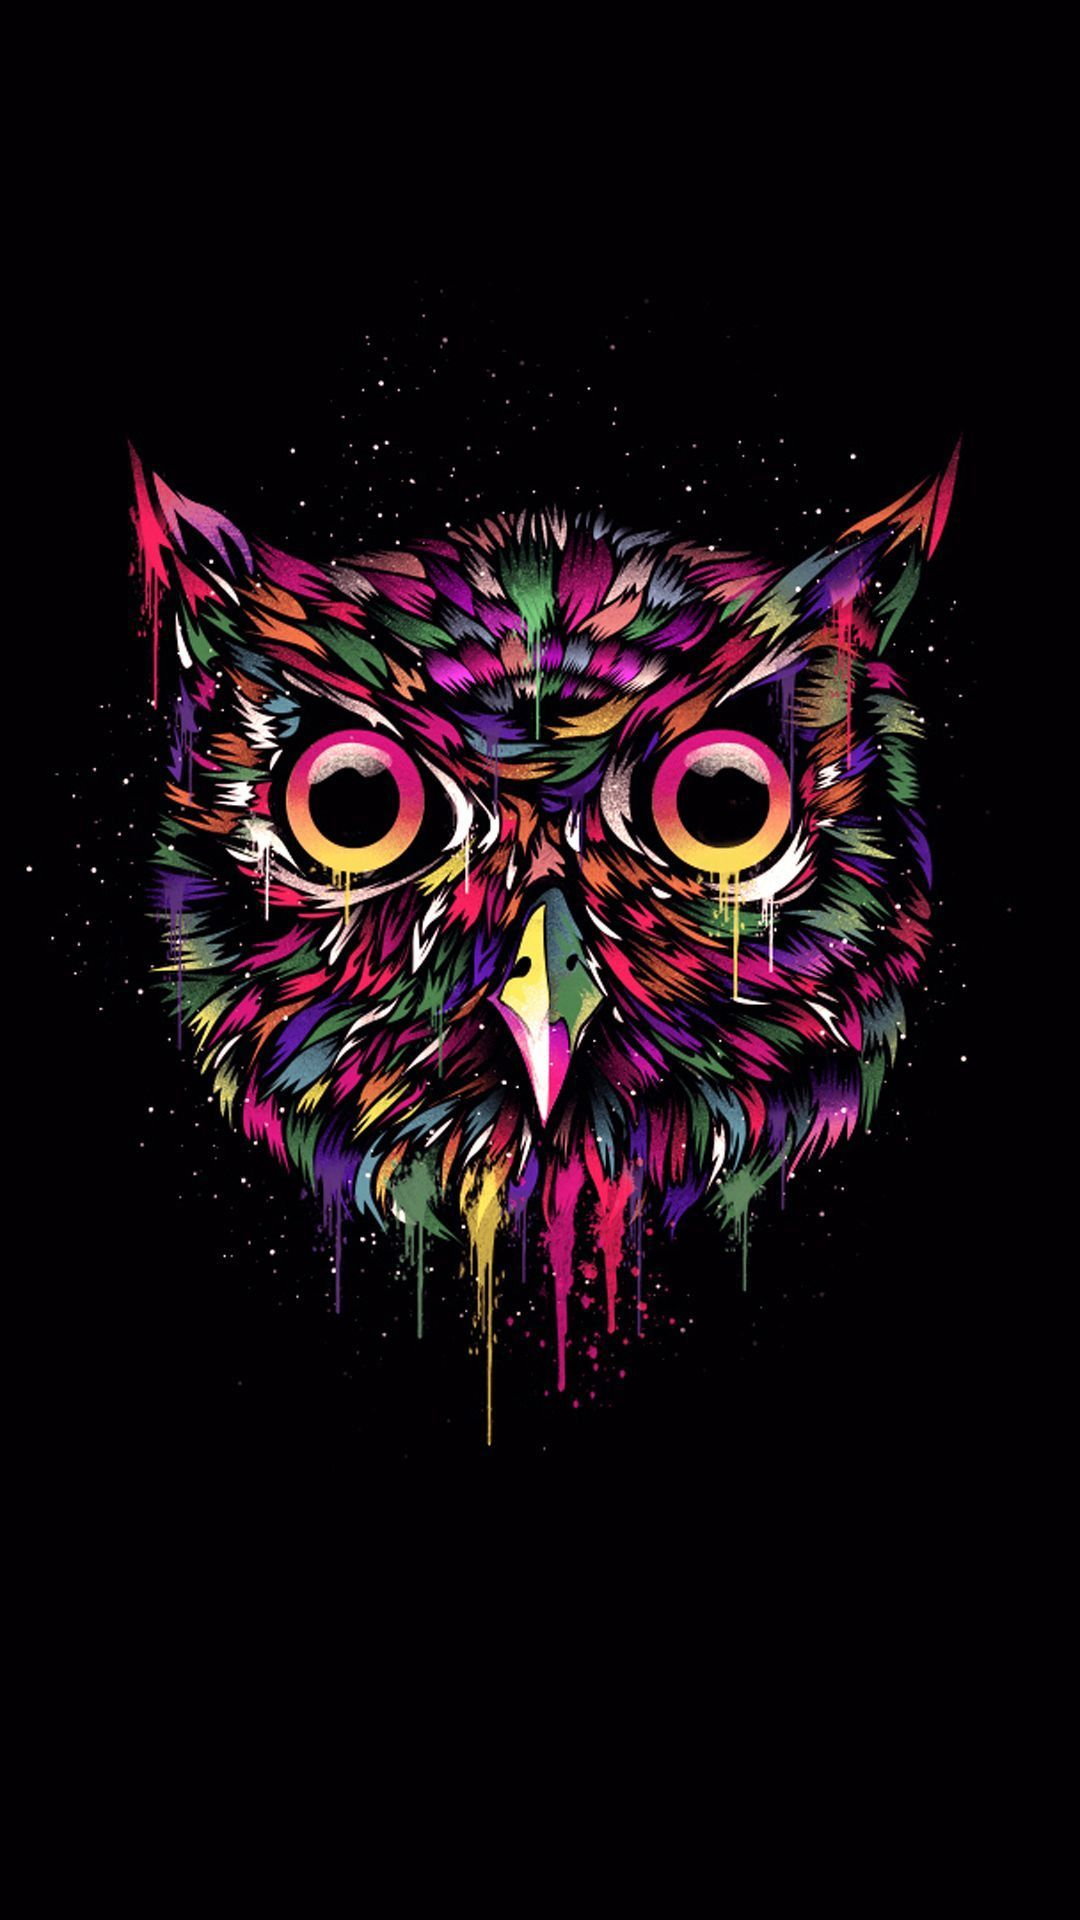 Owl Iphone Android Iphone Desktop Hd Backgrounds Wallpapers 1080p 4k 107854 Hdwallpapers A Cute Owls Wallpaper Owl Wallpaper Iphone Owl Wallpaper